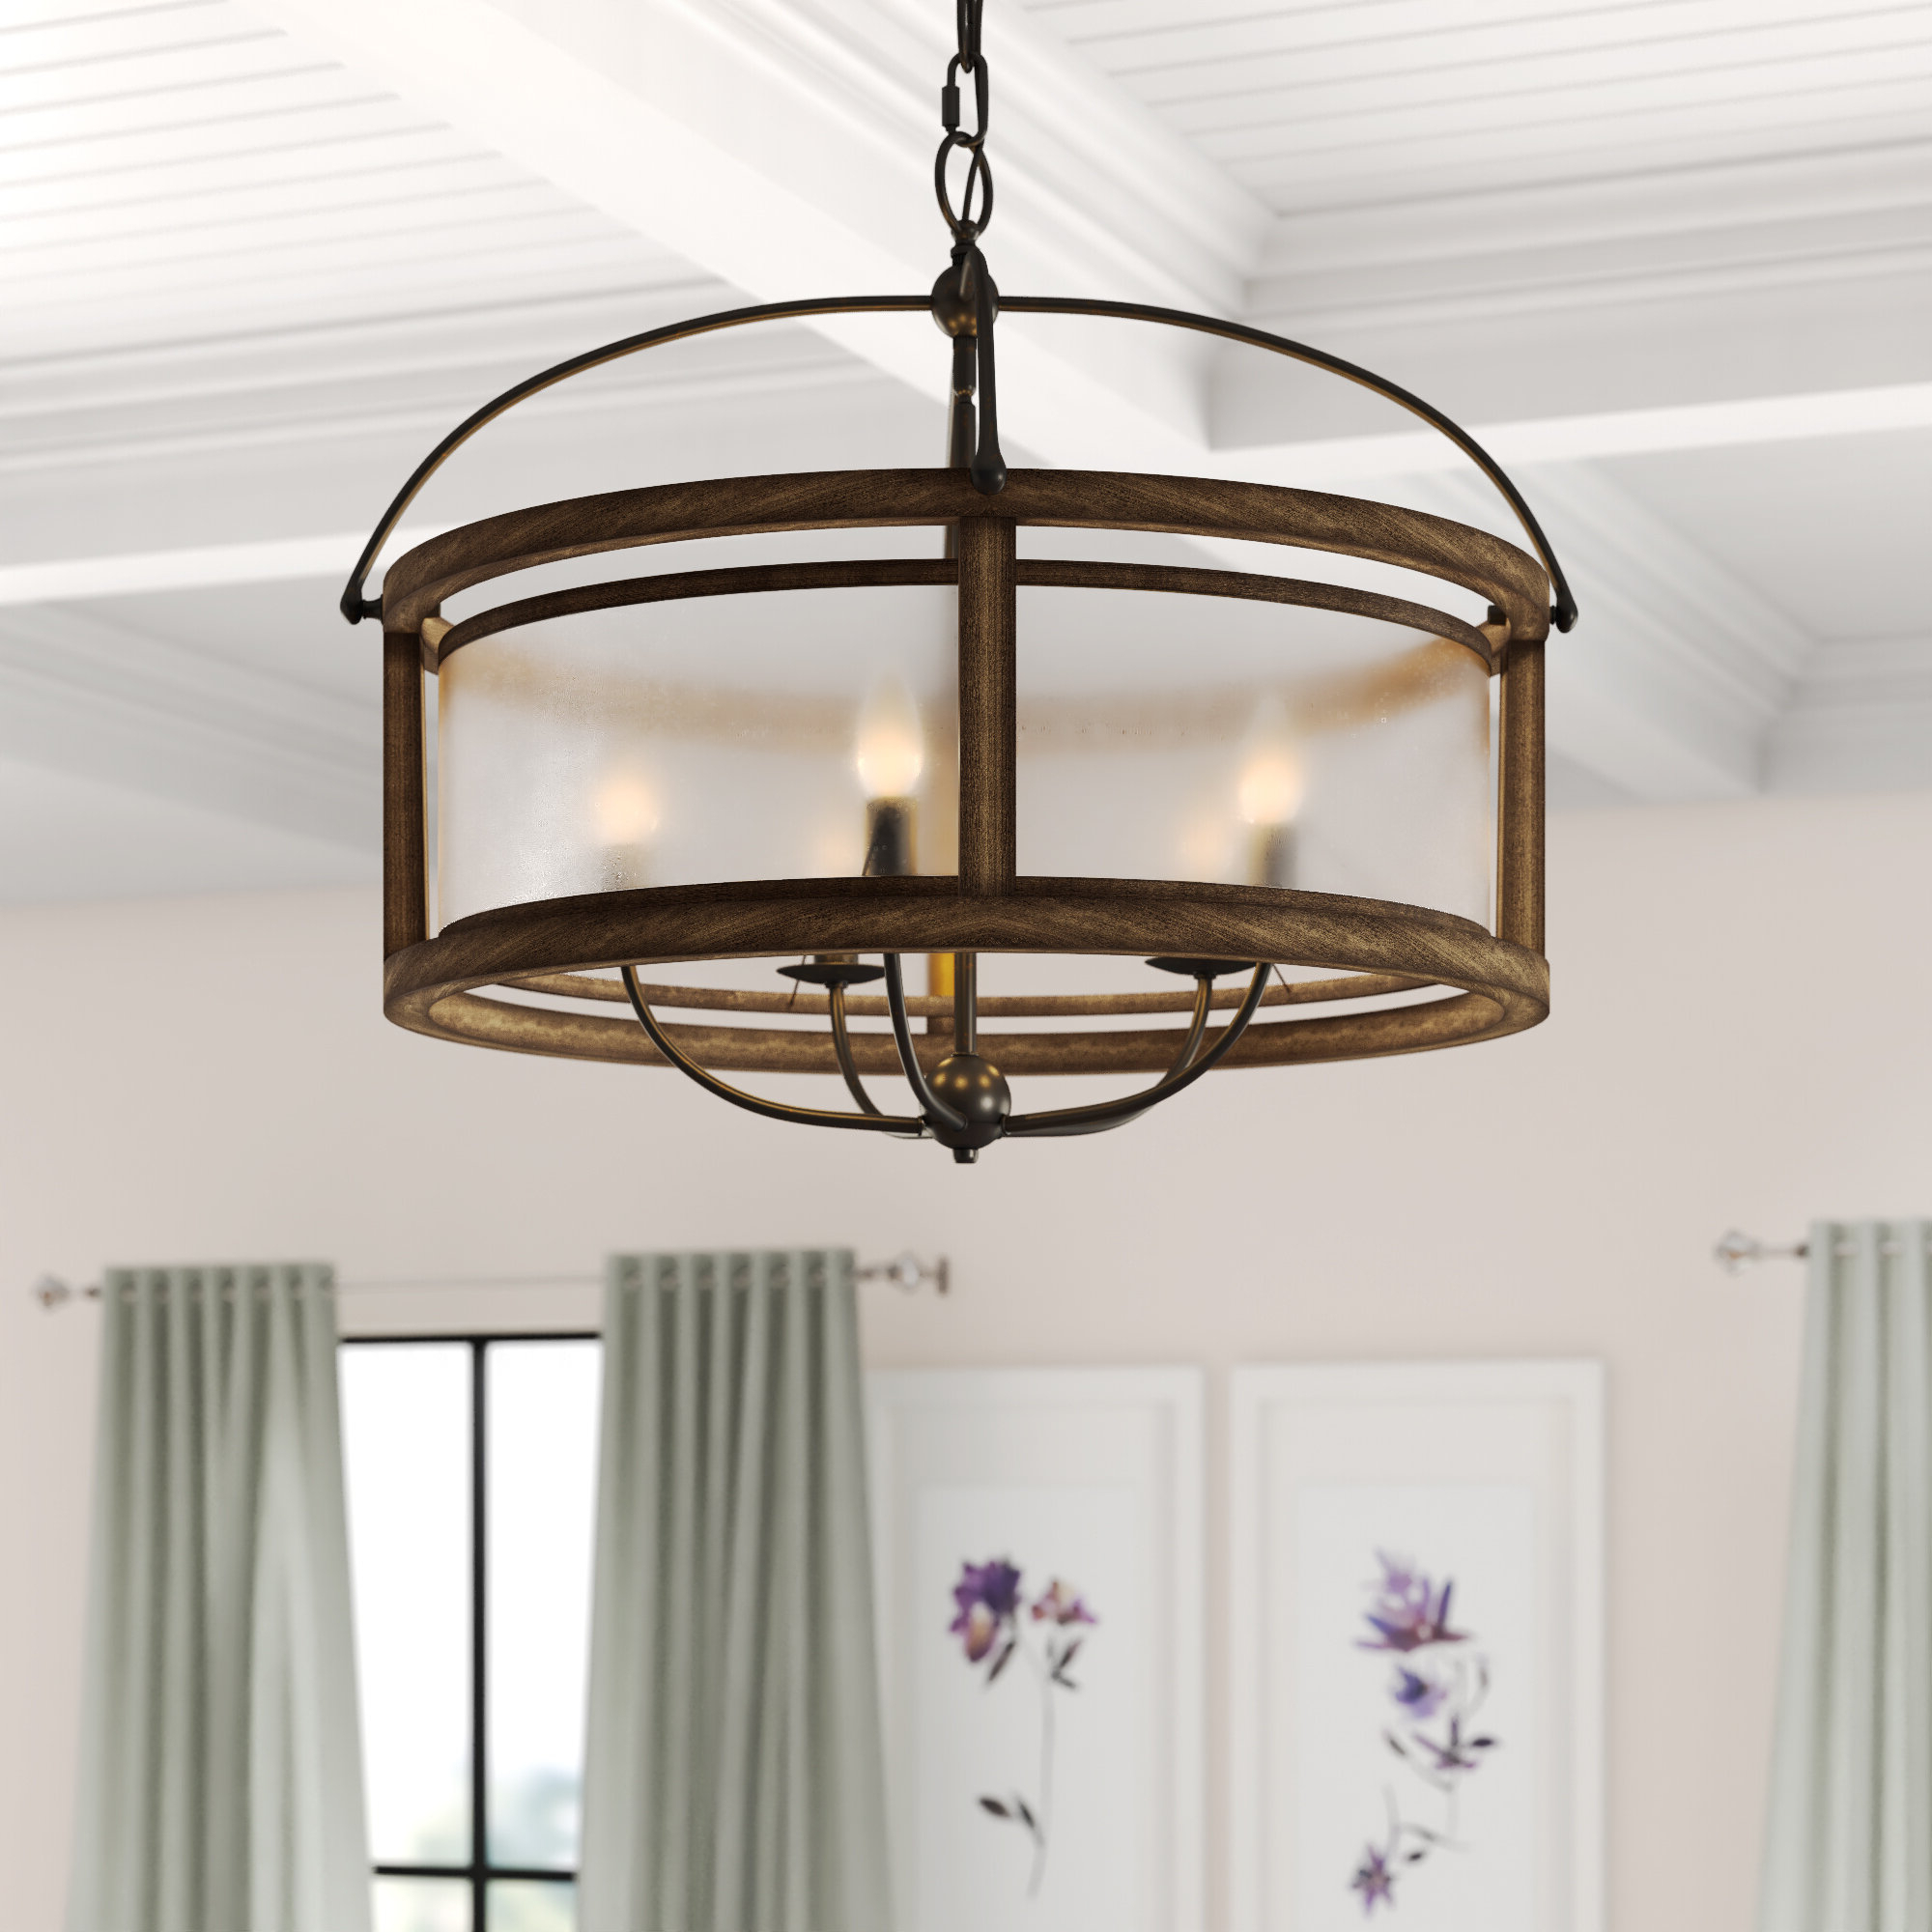 Aadhya 5 Light Drum Chandelier For Well Liked Dailey 4 Light Drum Chandeliers (View 6 of 25)